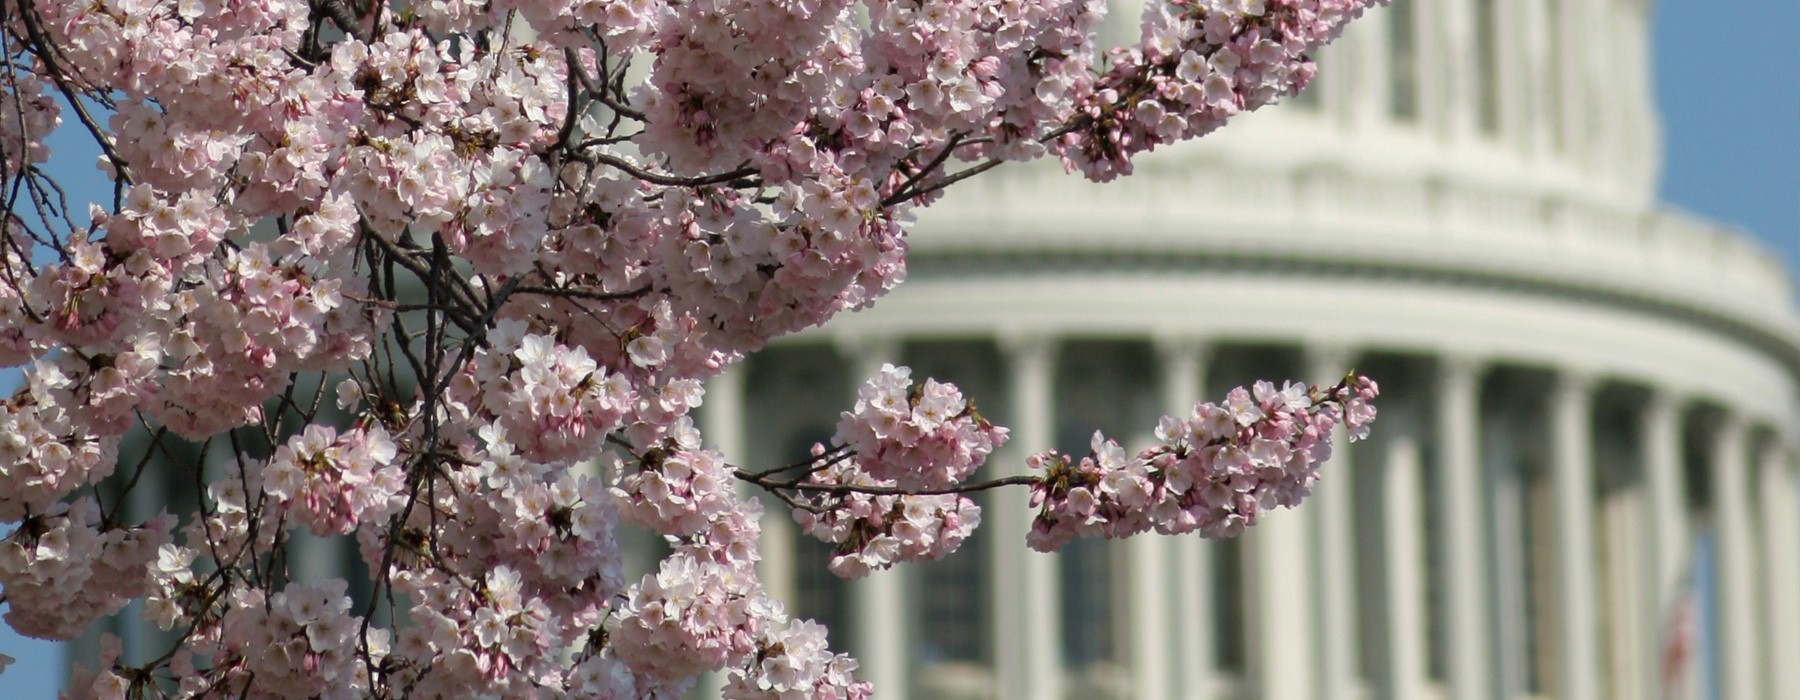 Cherry Blossoms with the United States Capitol Dome in Washington, DC